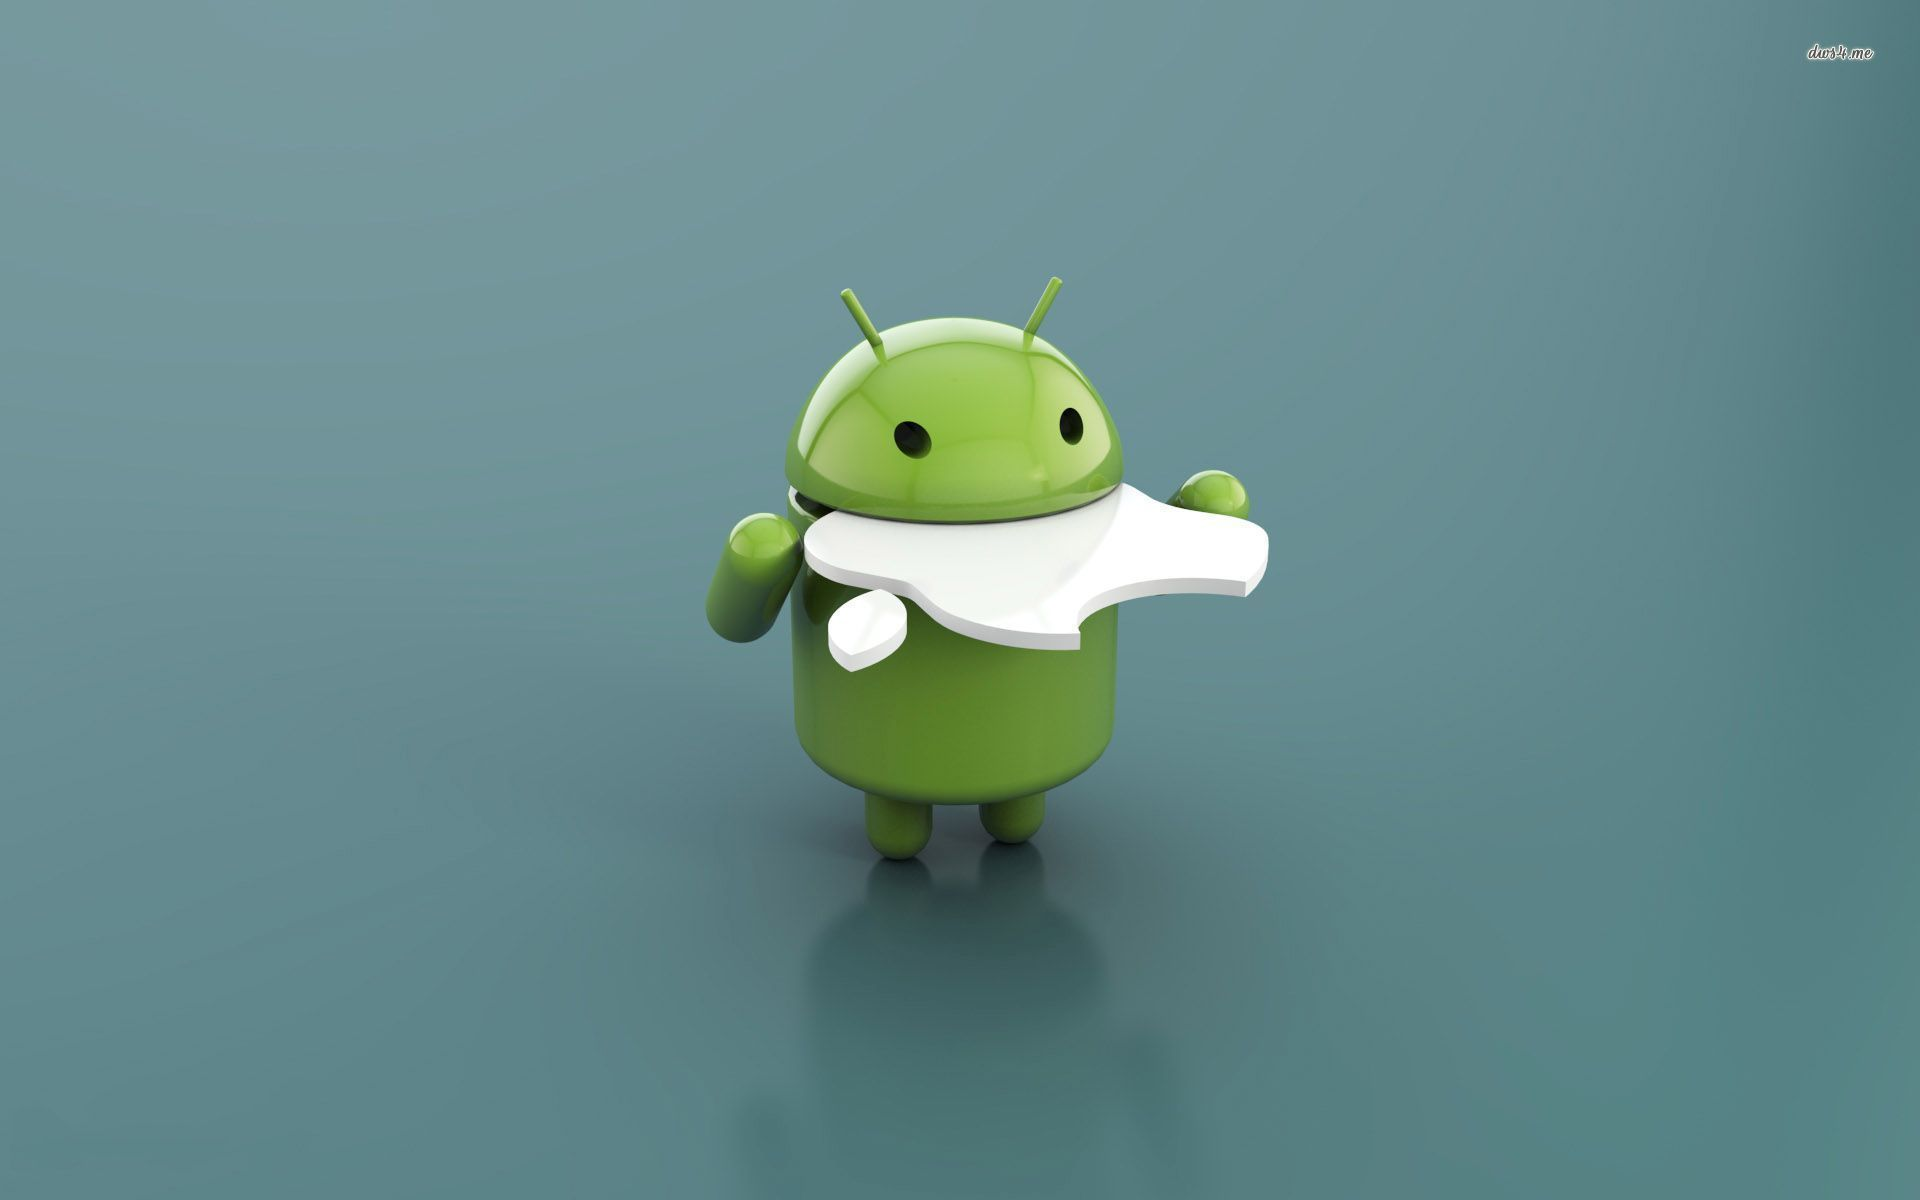 funny hd apple vs android wallpaper collections